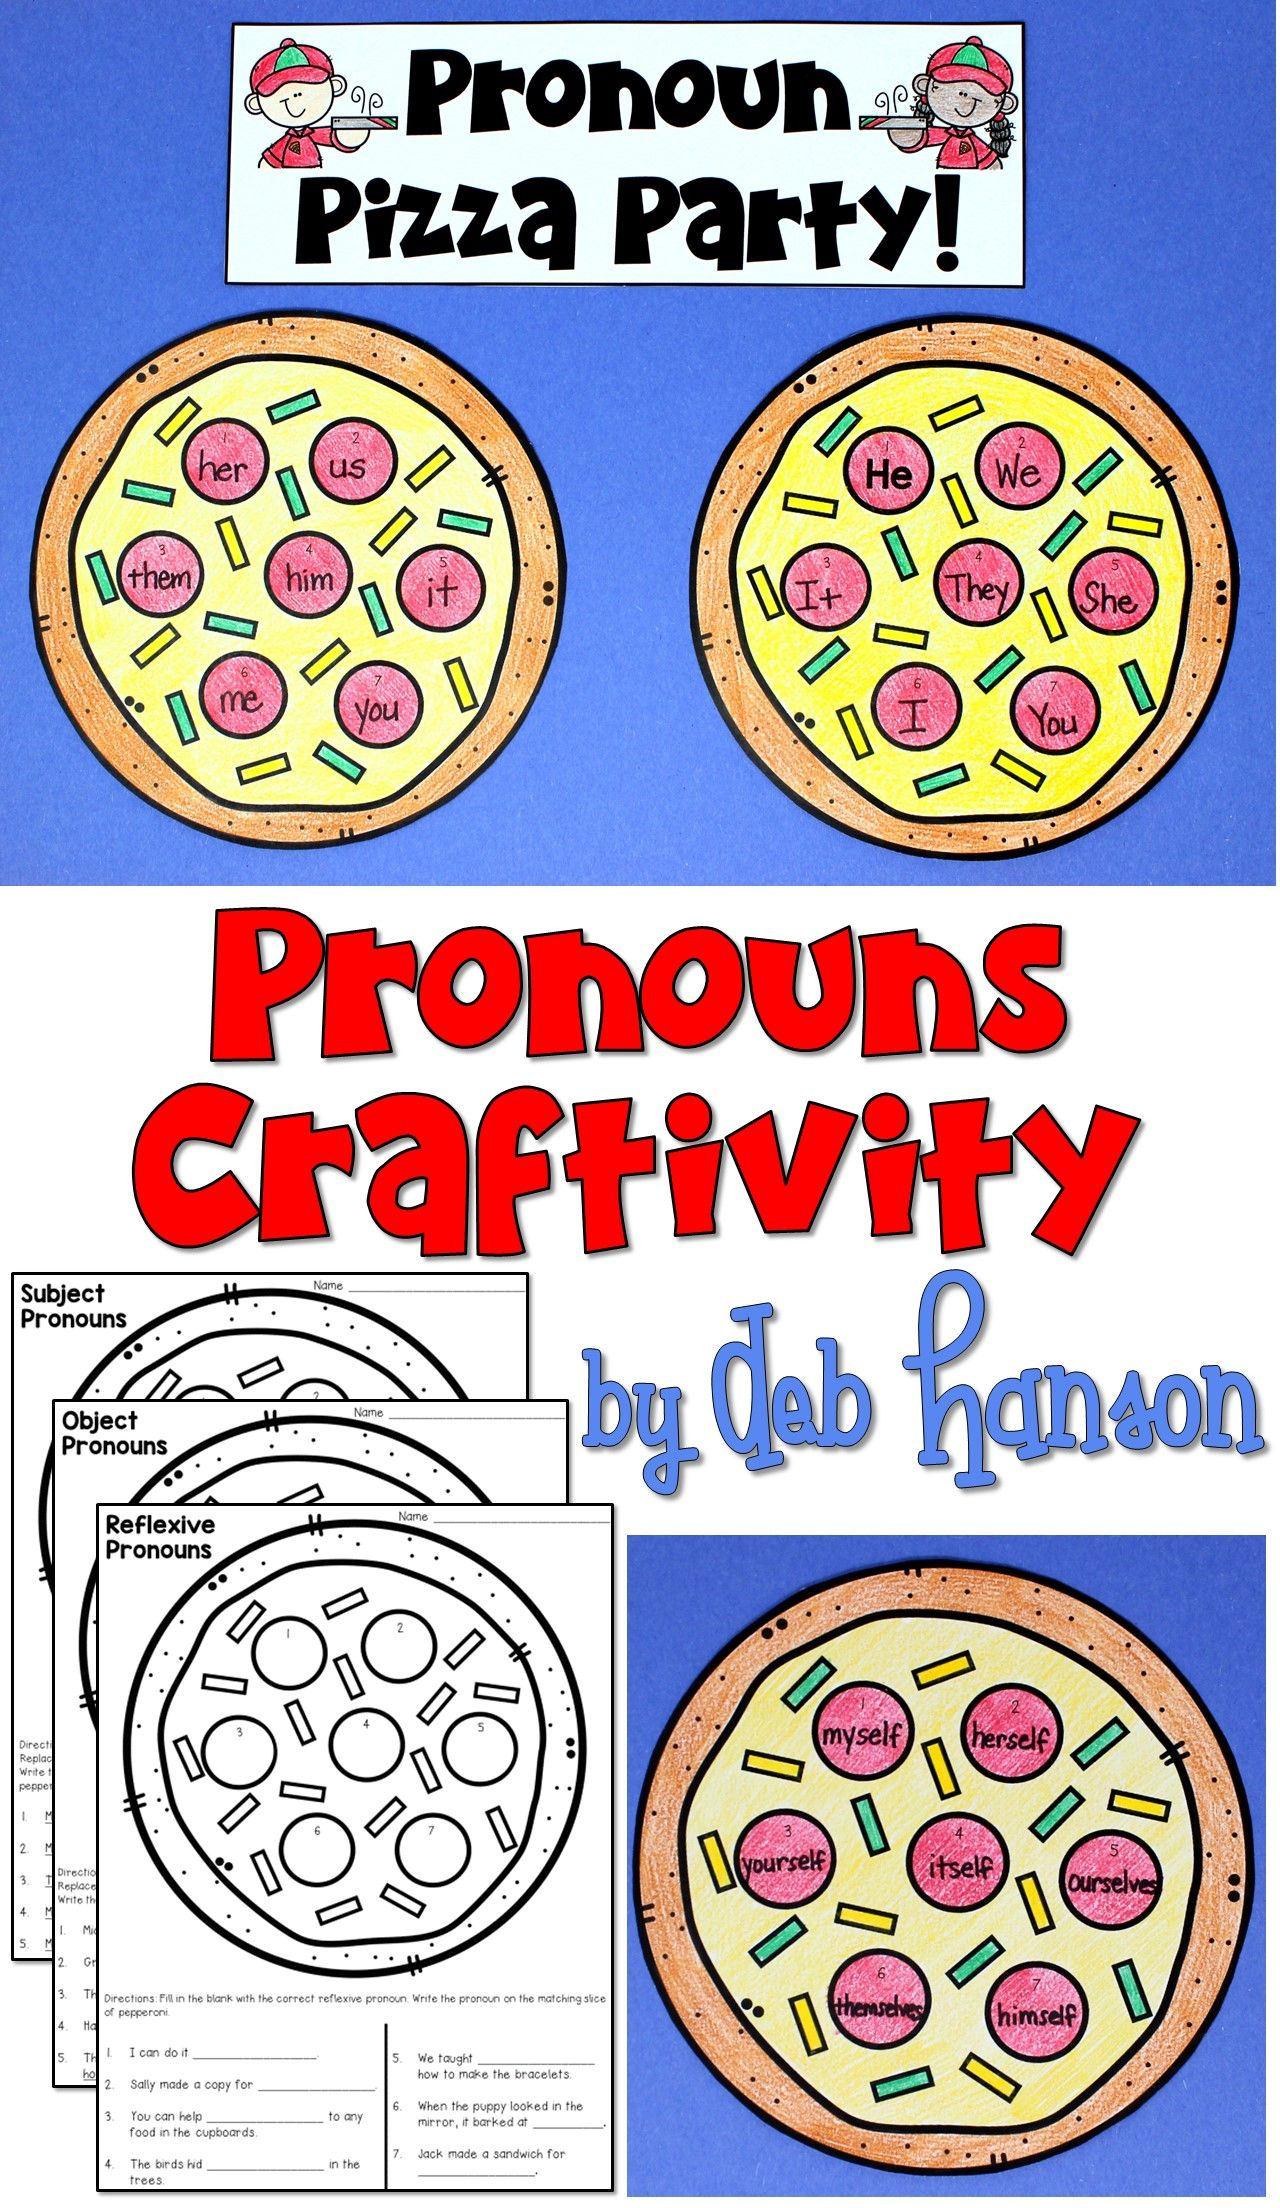 Pronouns Craftivity